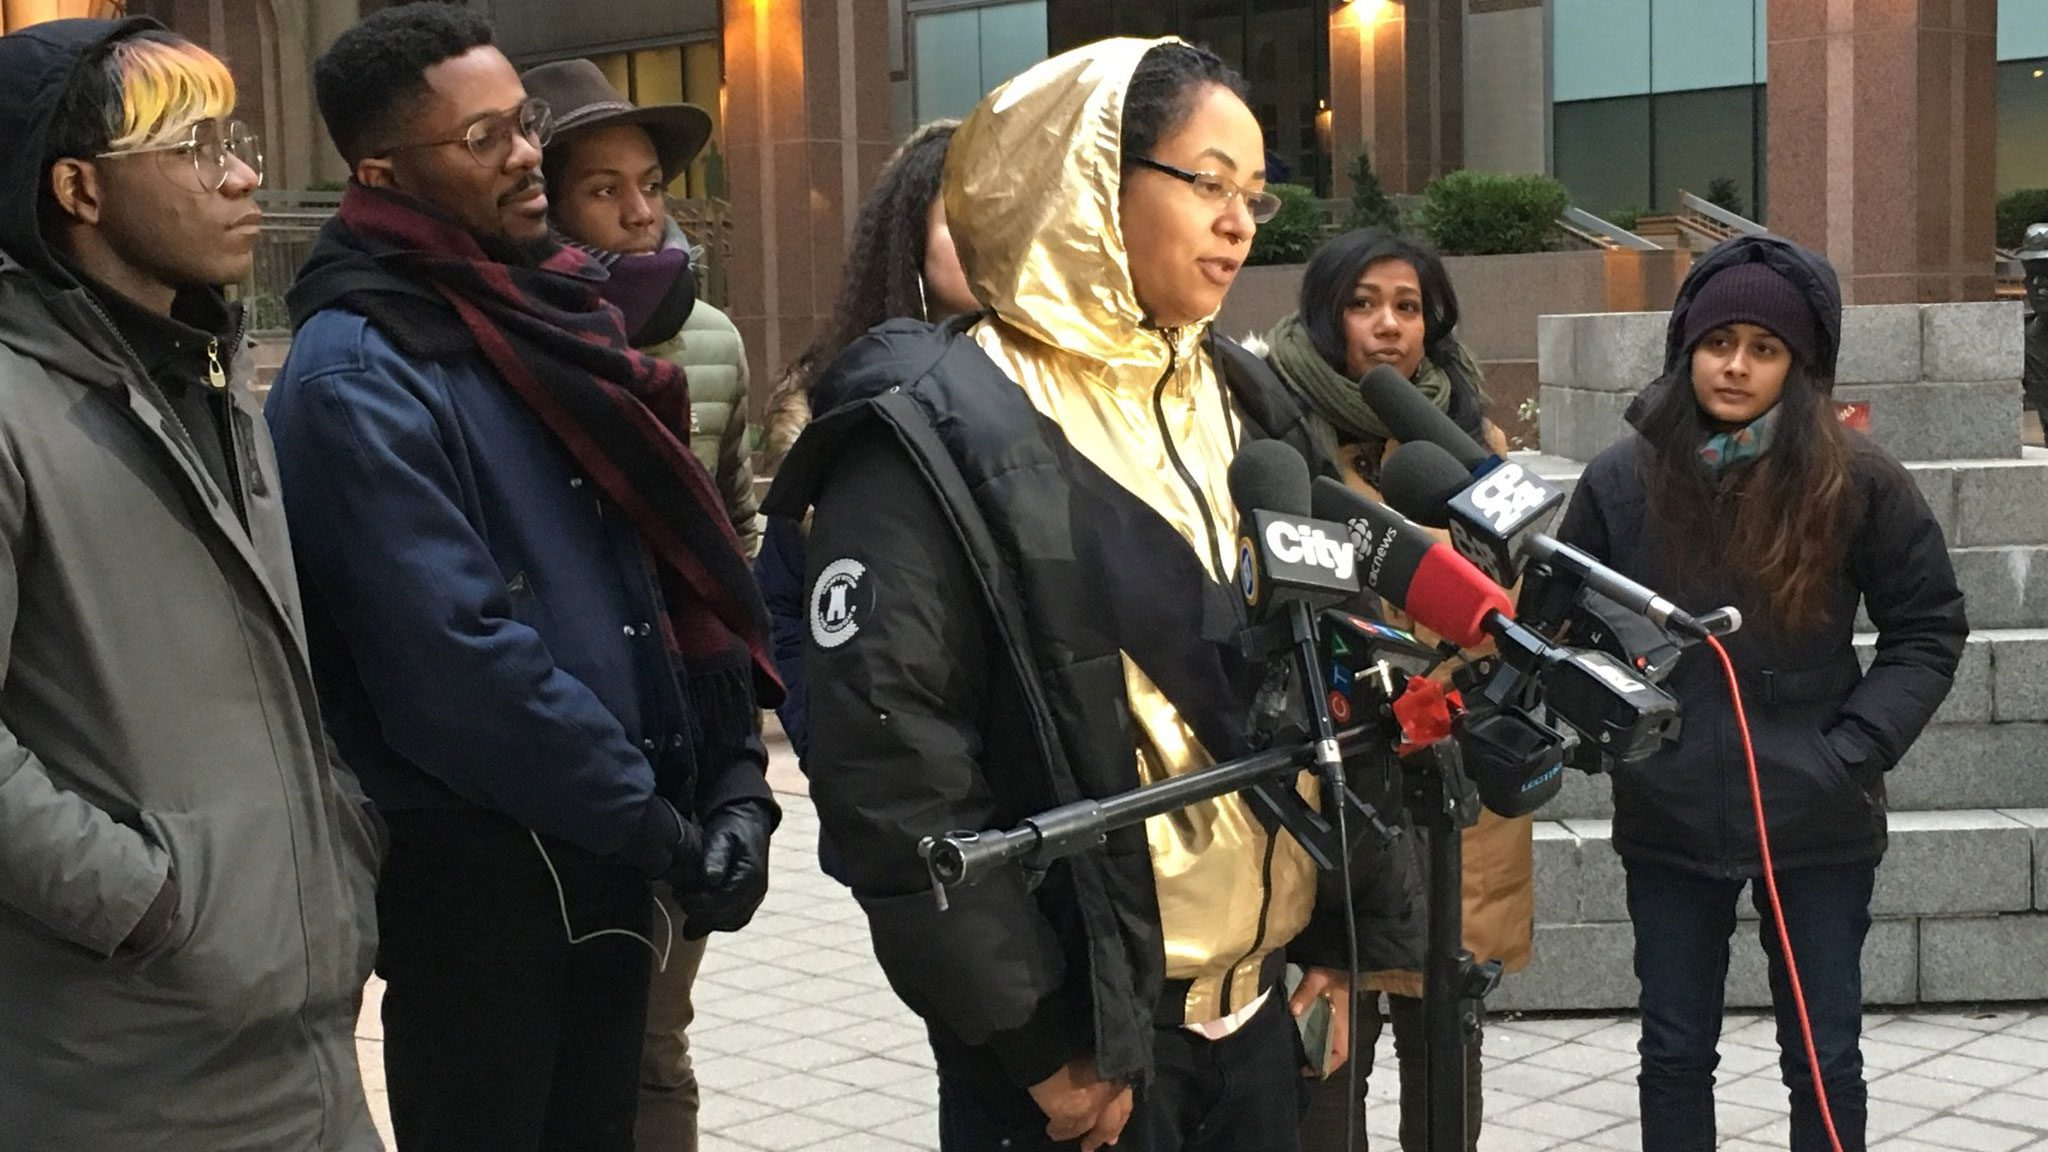 Activists call TDSB's decision to remove cops from schools 'a huge victory'